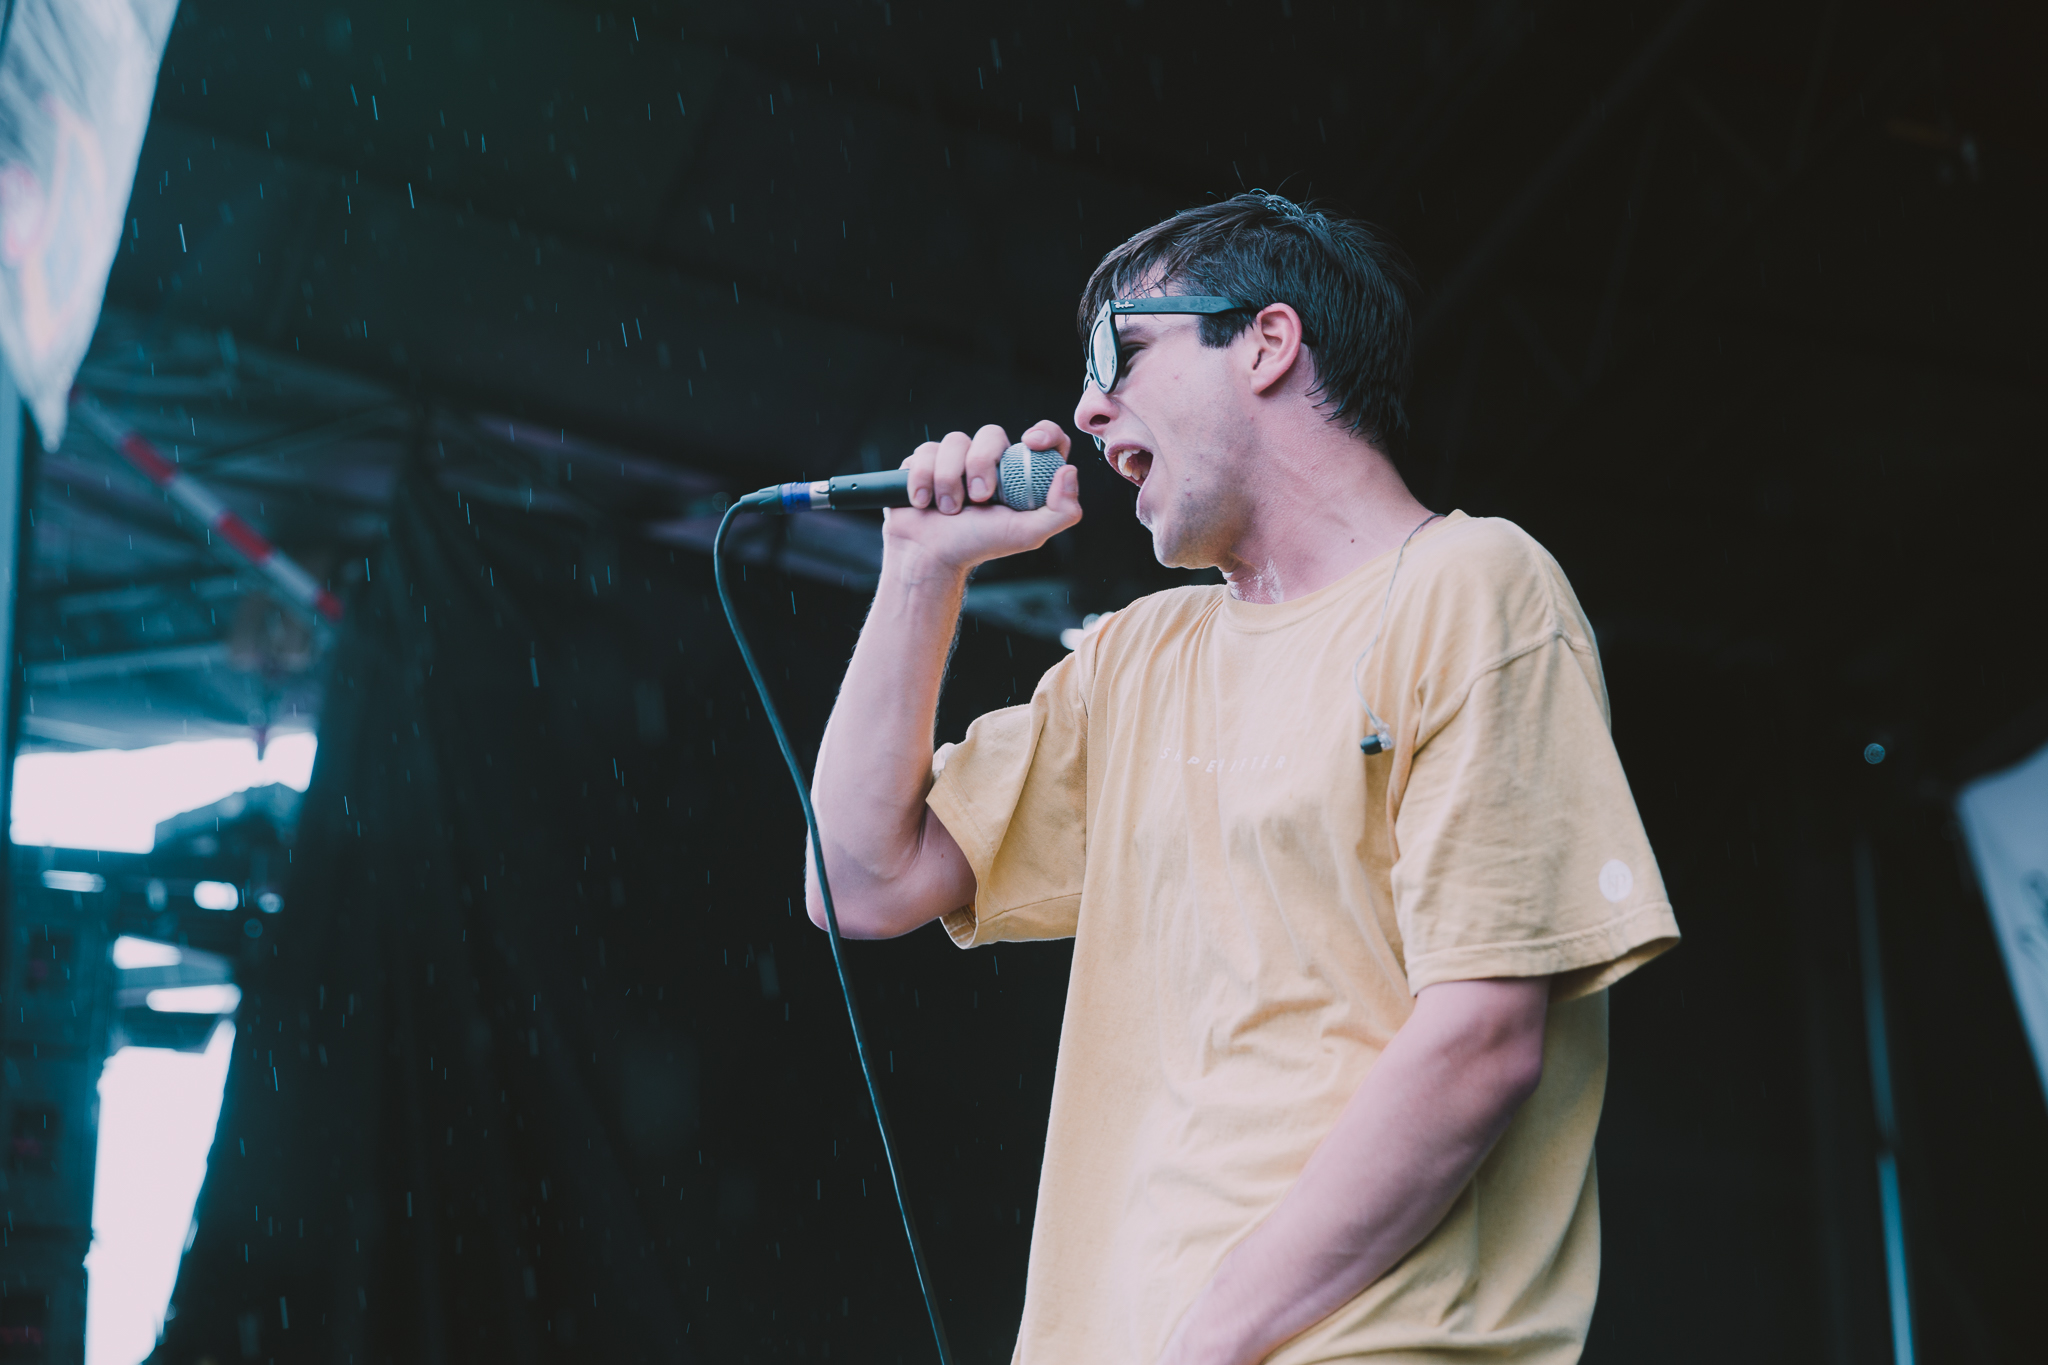 KNUCKLE PUCK PERFORMING AT VAN'S WARPED TOUR IN SAN ANTONIO, TX ON JULY 07, 2018.